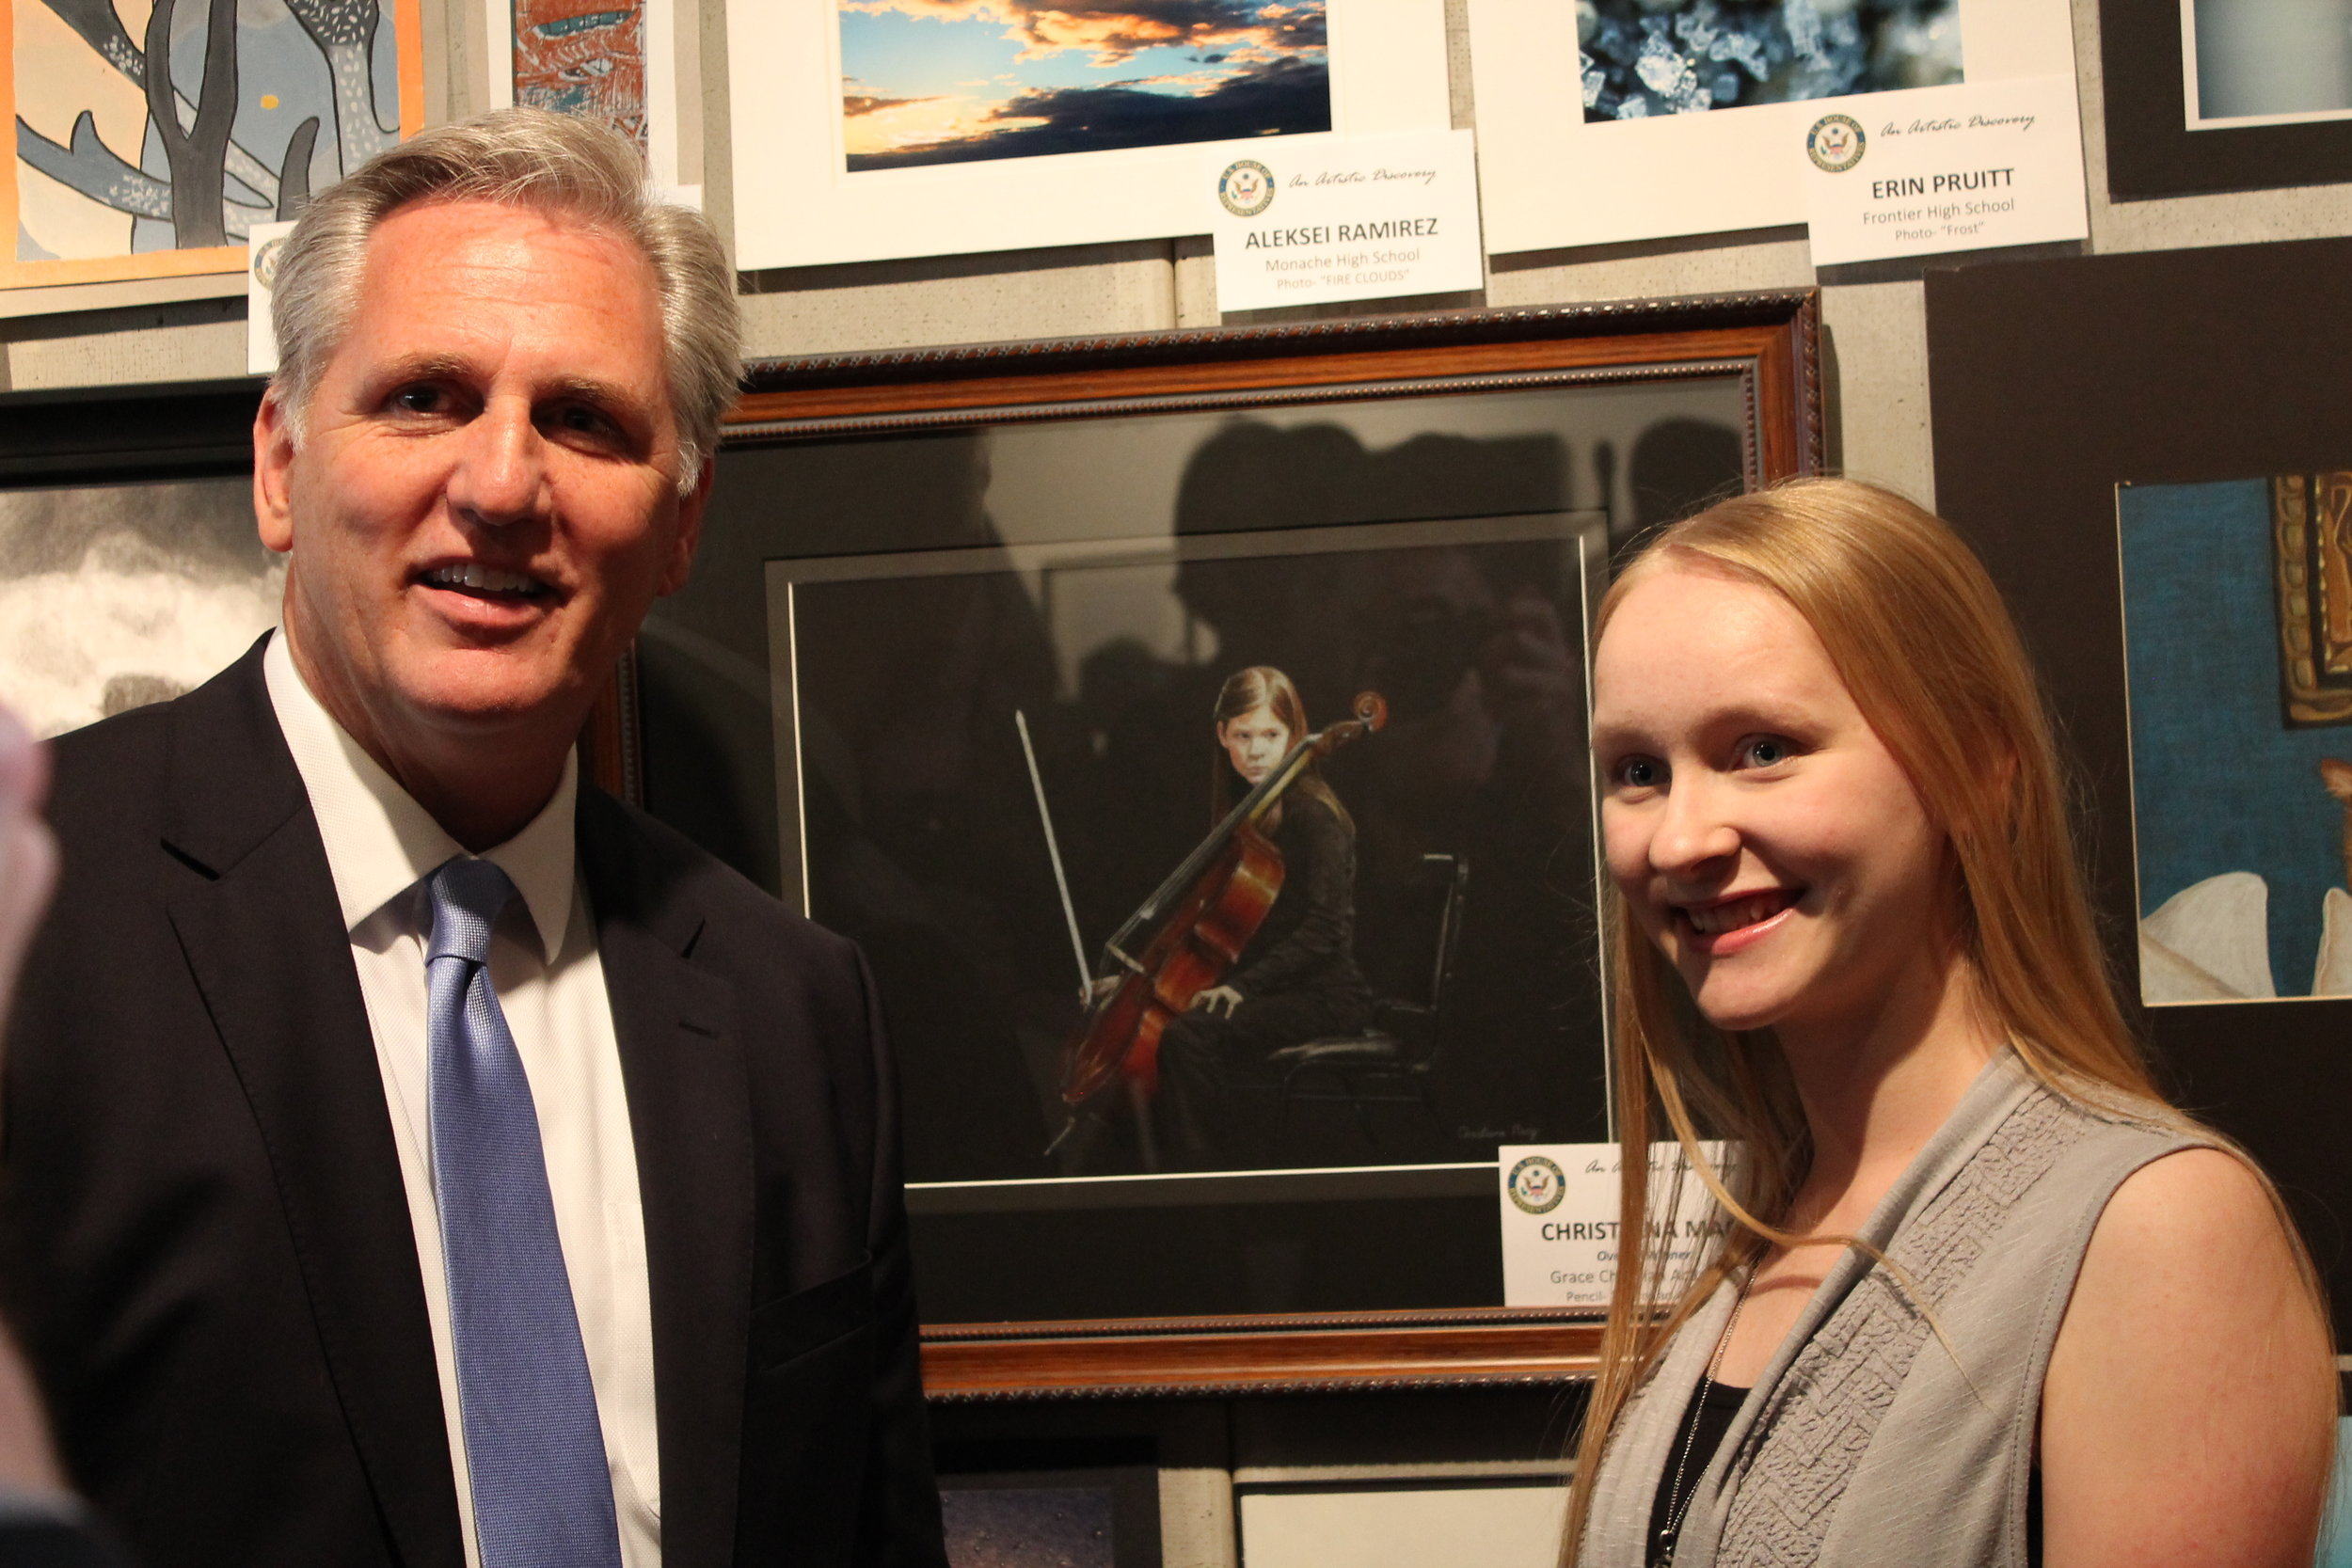 Congressman McCarthy and Christiana in front of her piece at the Bakersfield reception.